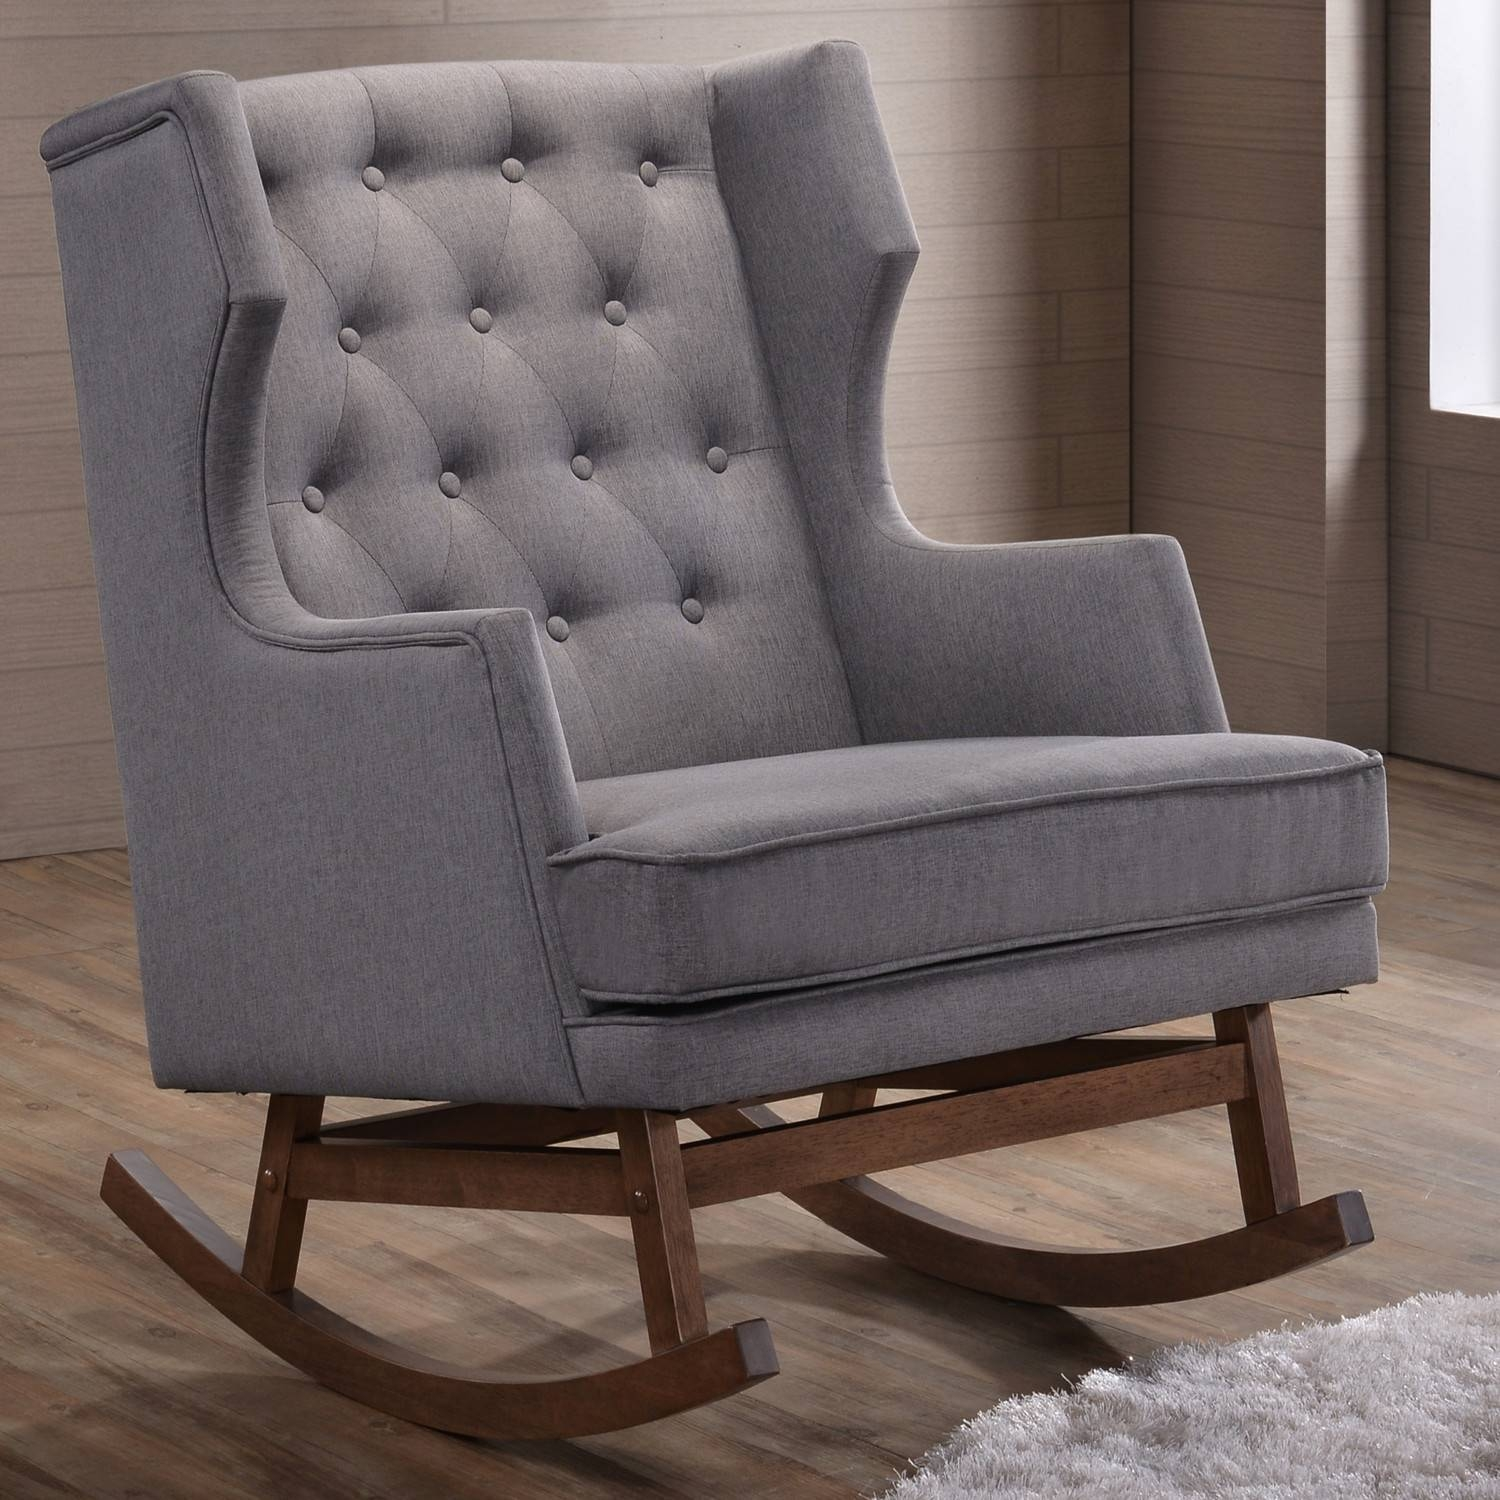 Furniture: Beautiful Upholstered Rocking Chair For Home Furniture in Narrow Armchairs (Image 14 of 30)